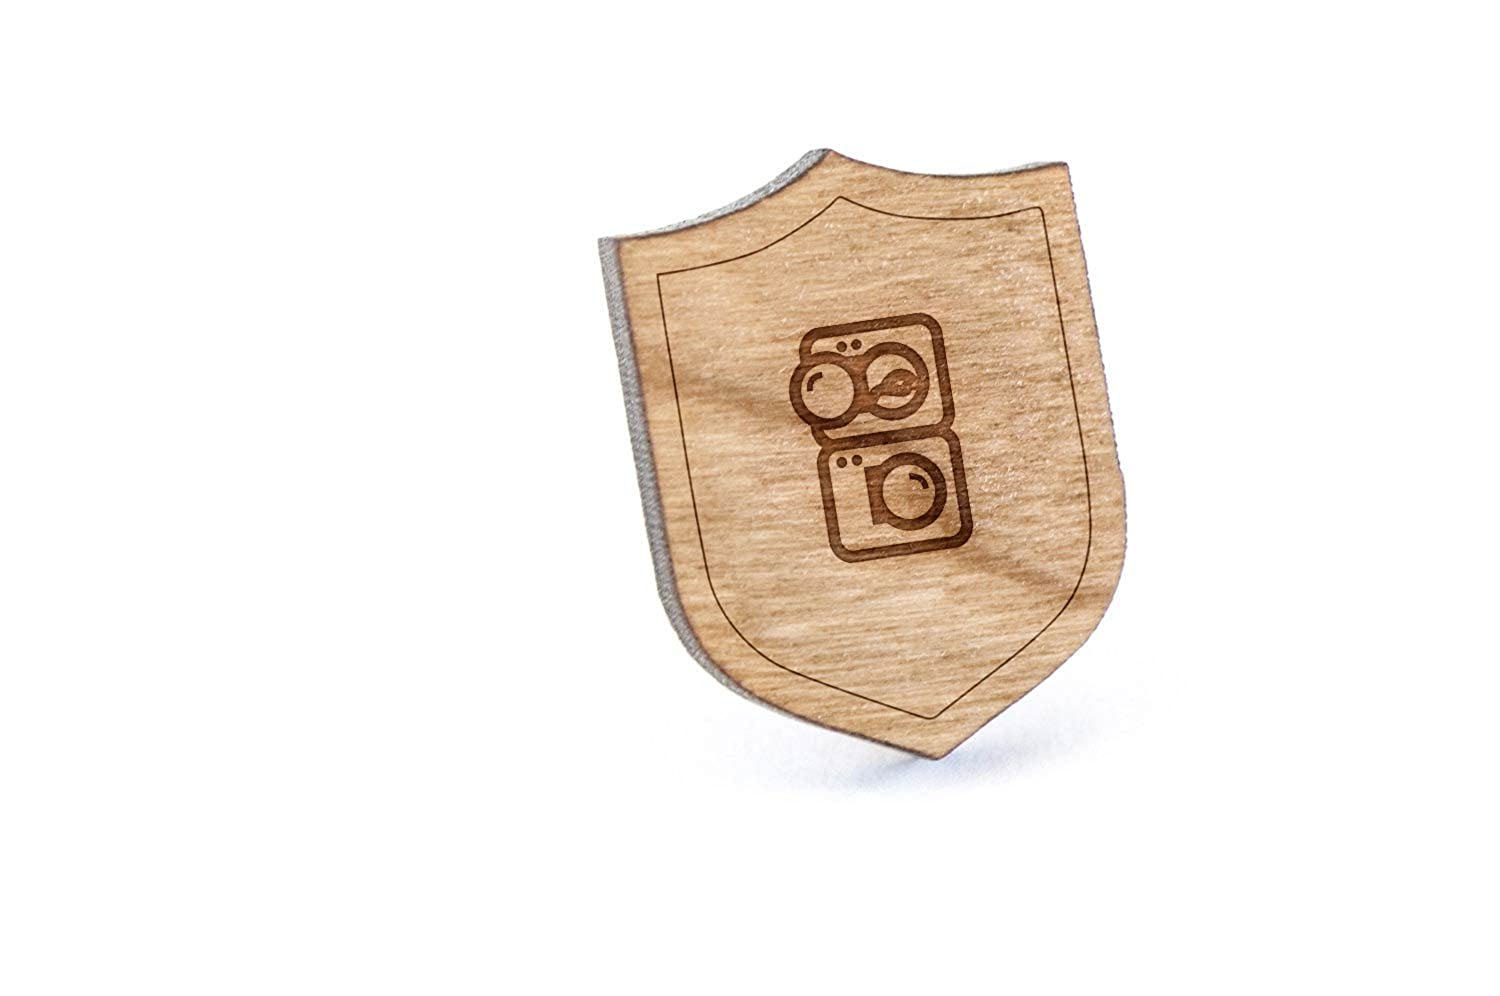 Washer Dryer Unit Lapel Pin, Wooden Pin And Tie Tack | Rustic And Minimalistic Groomsmen Gifts And Wedding Accessories